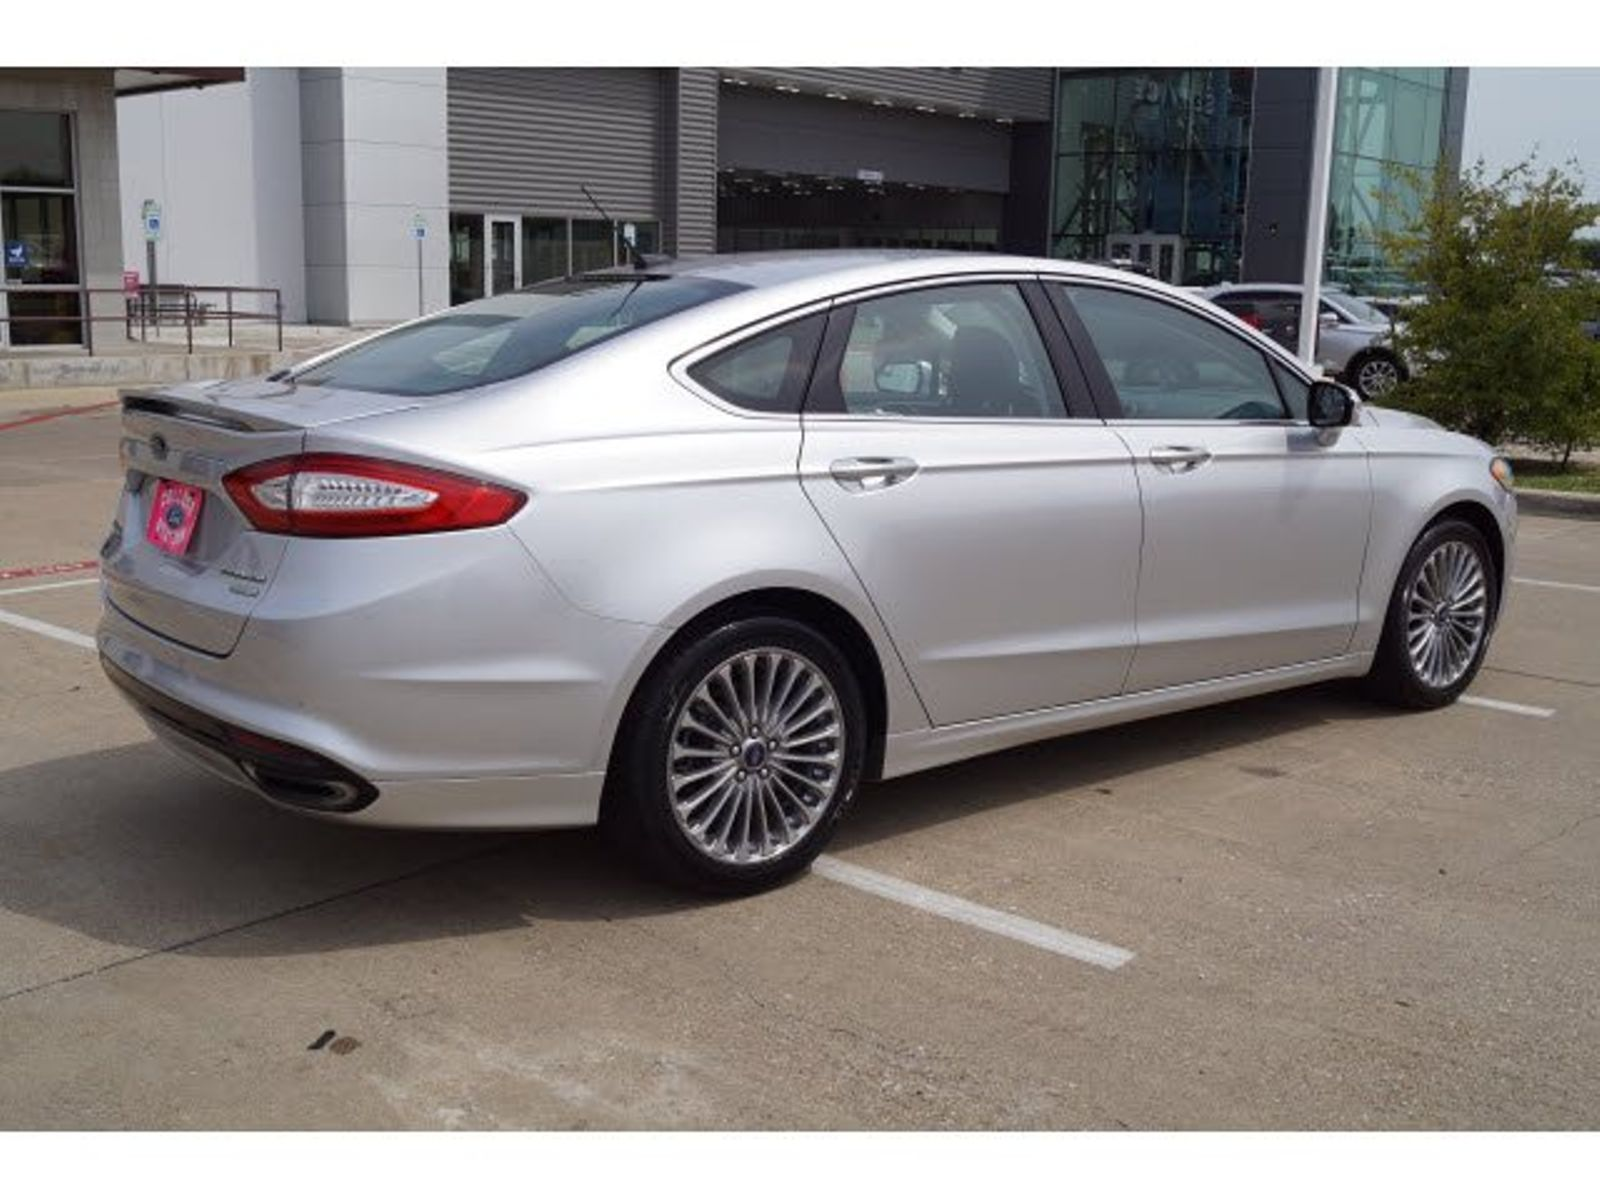 2014 Ford Fusion Titanium city TX College Station Ford Used Cars